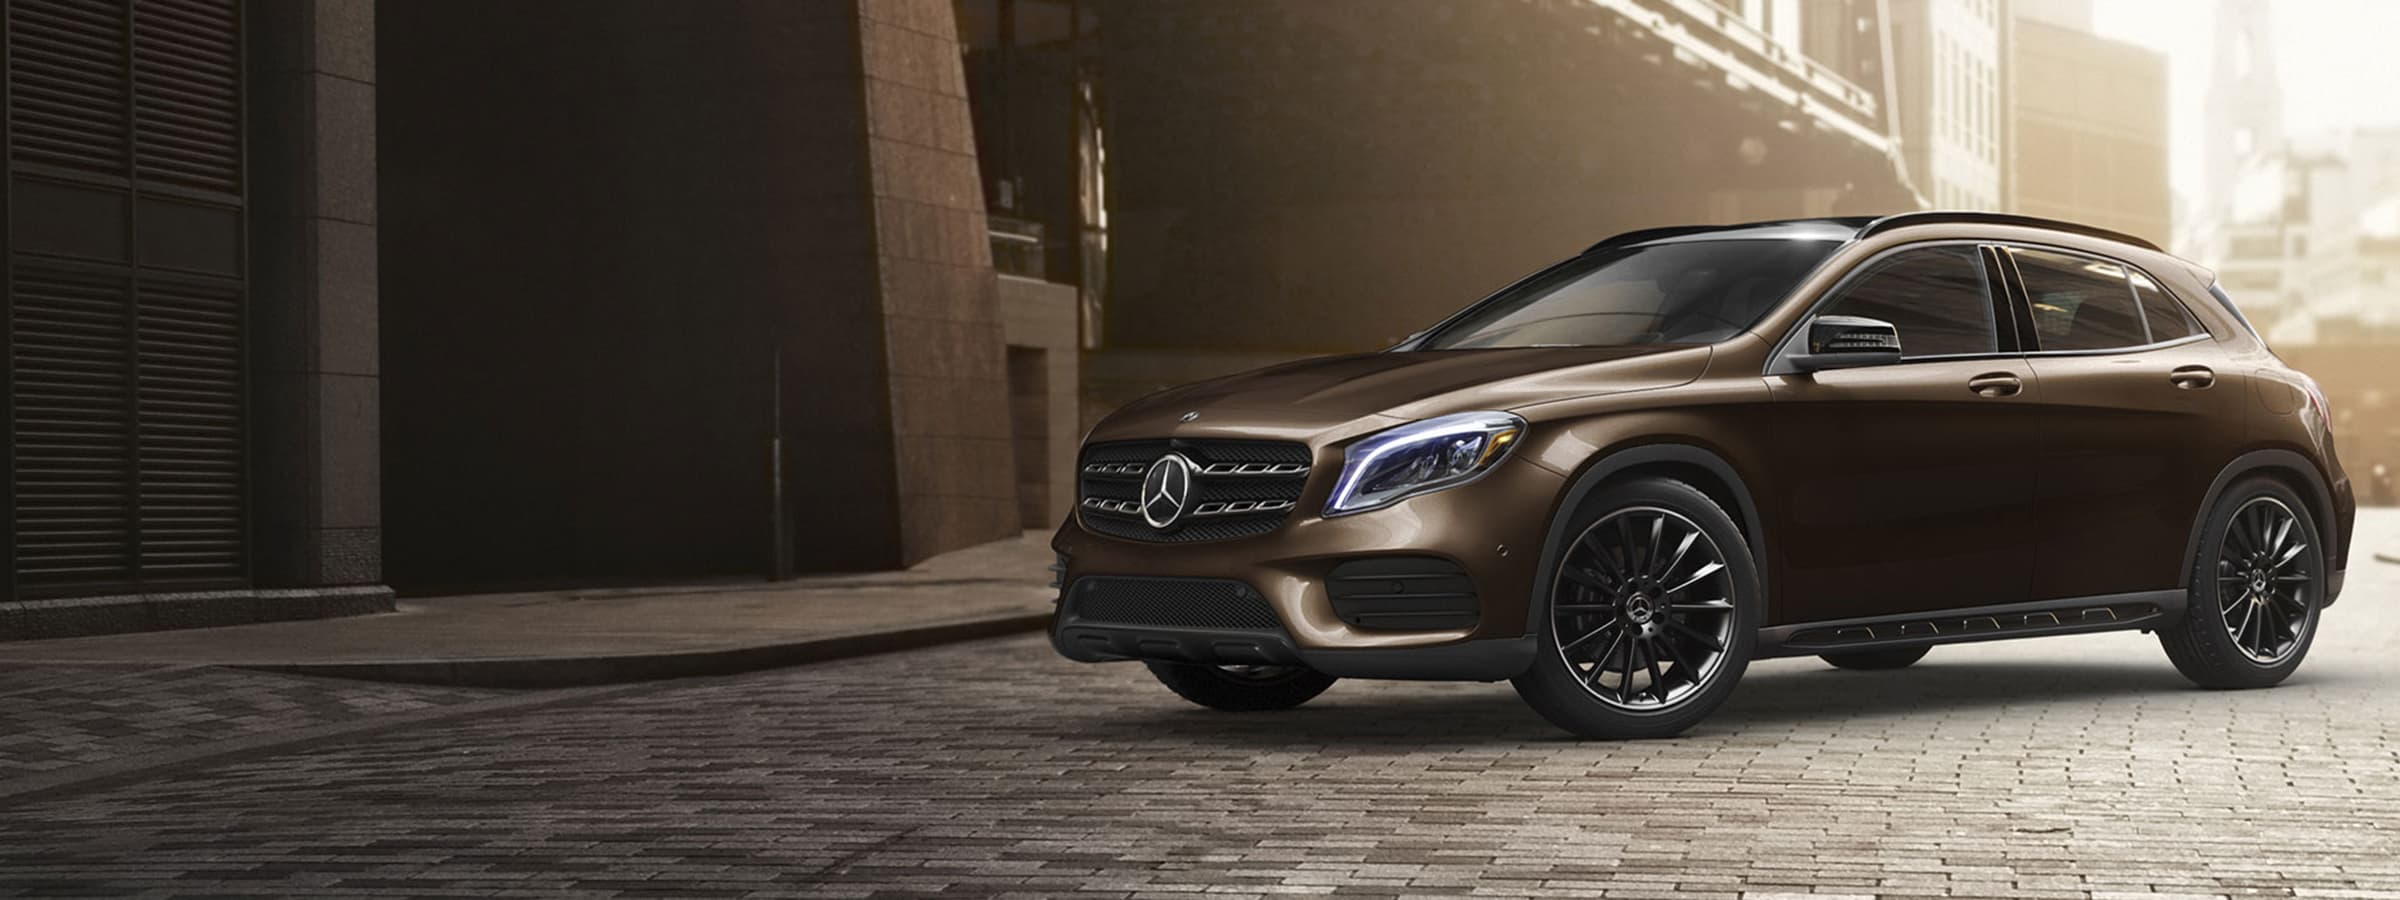 The 2019 GLA SUV